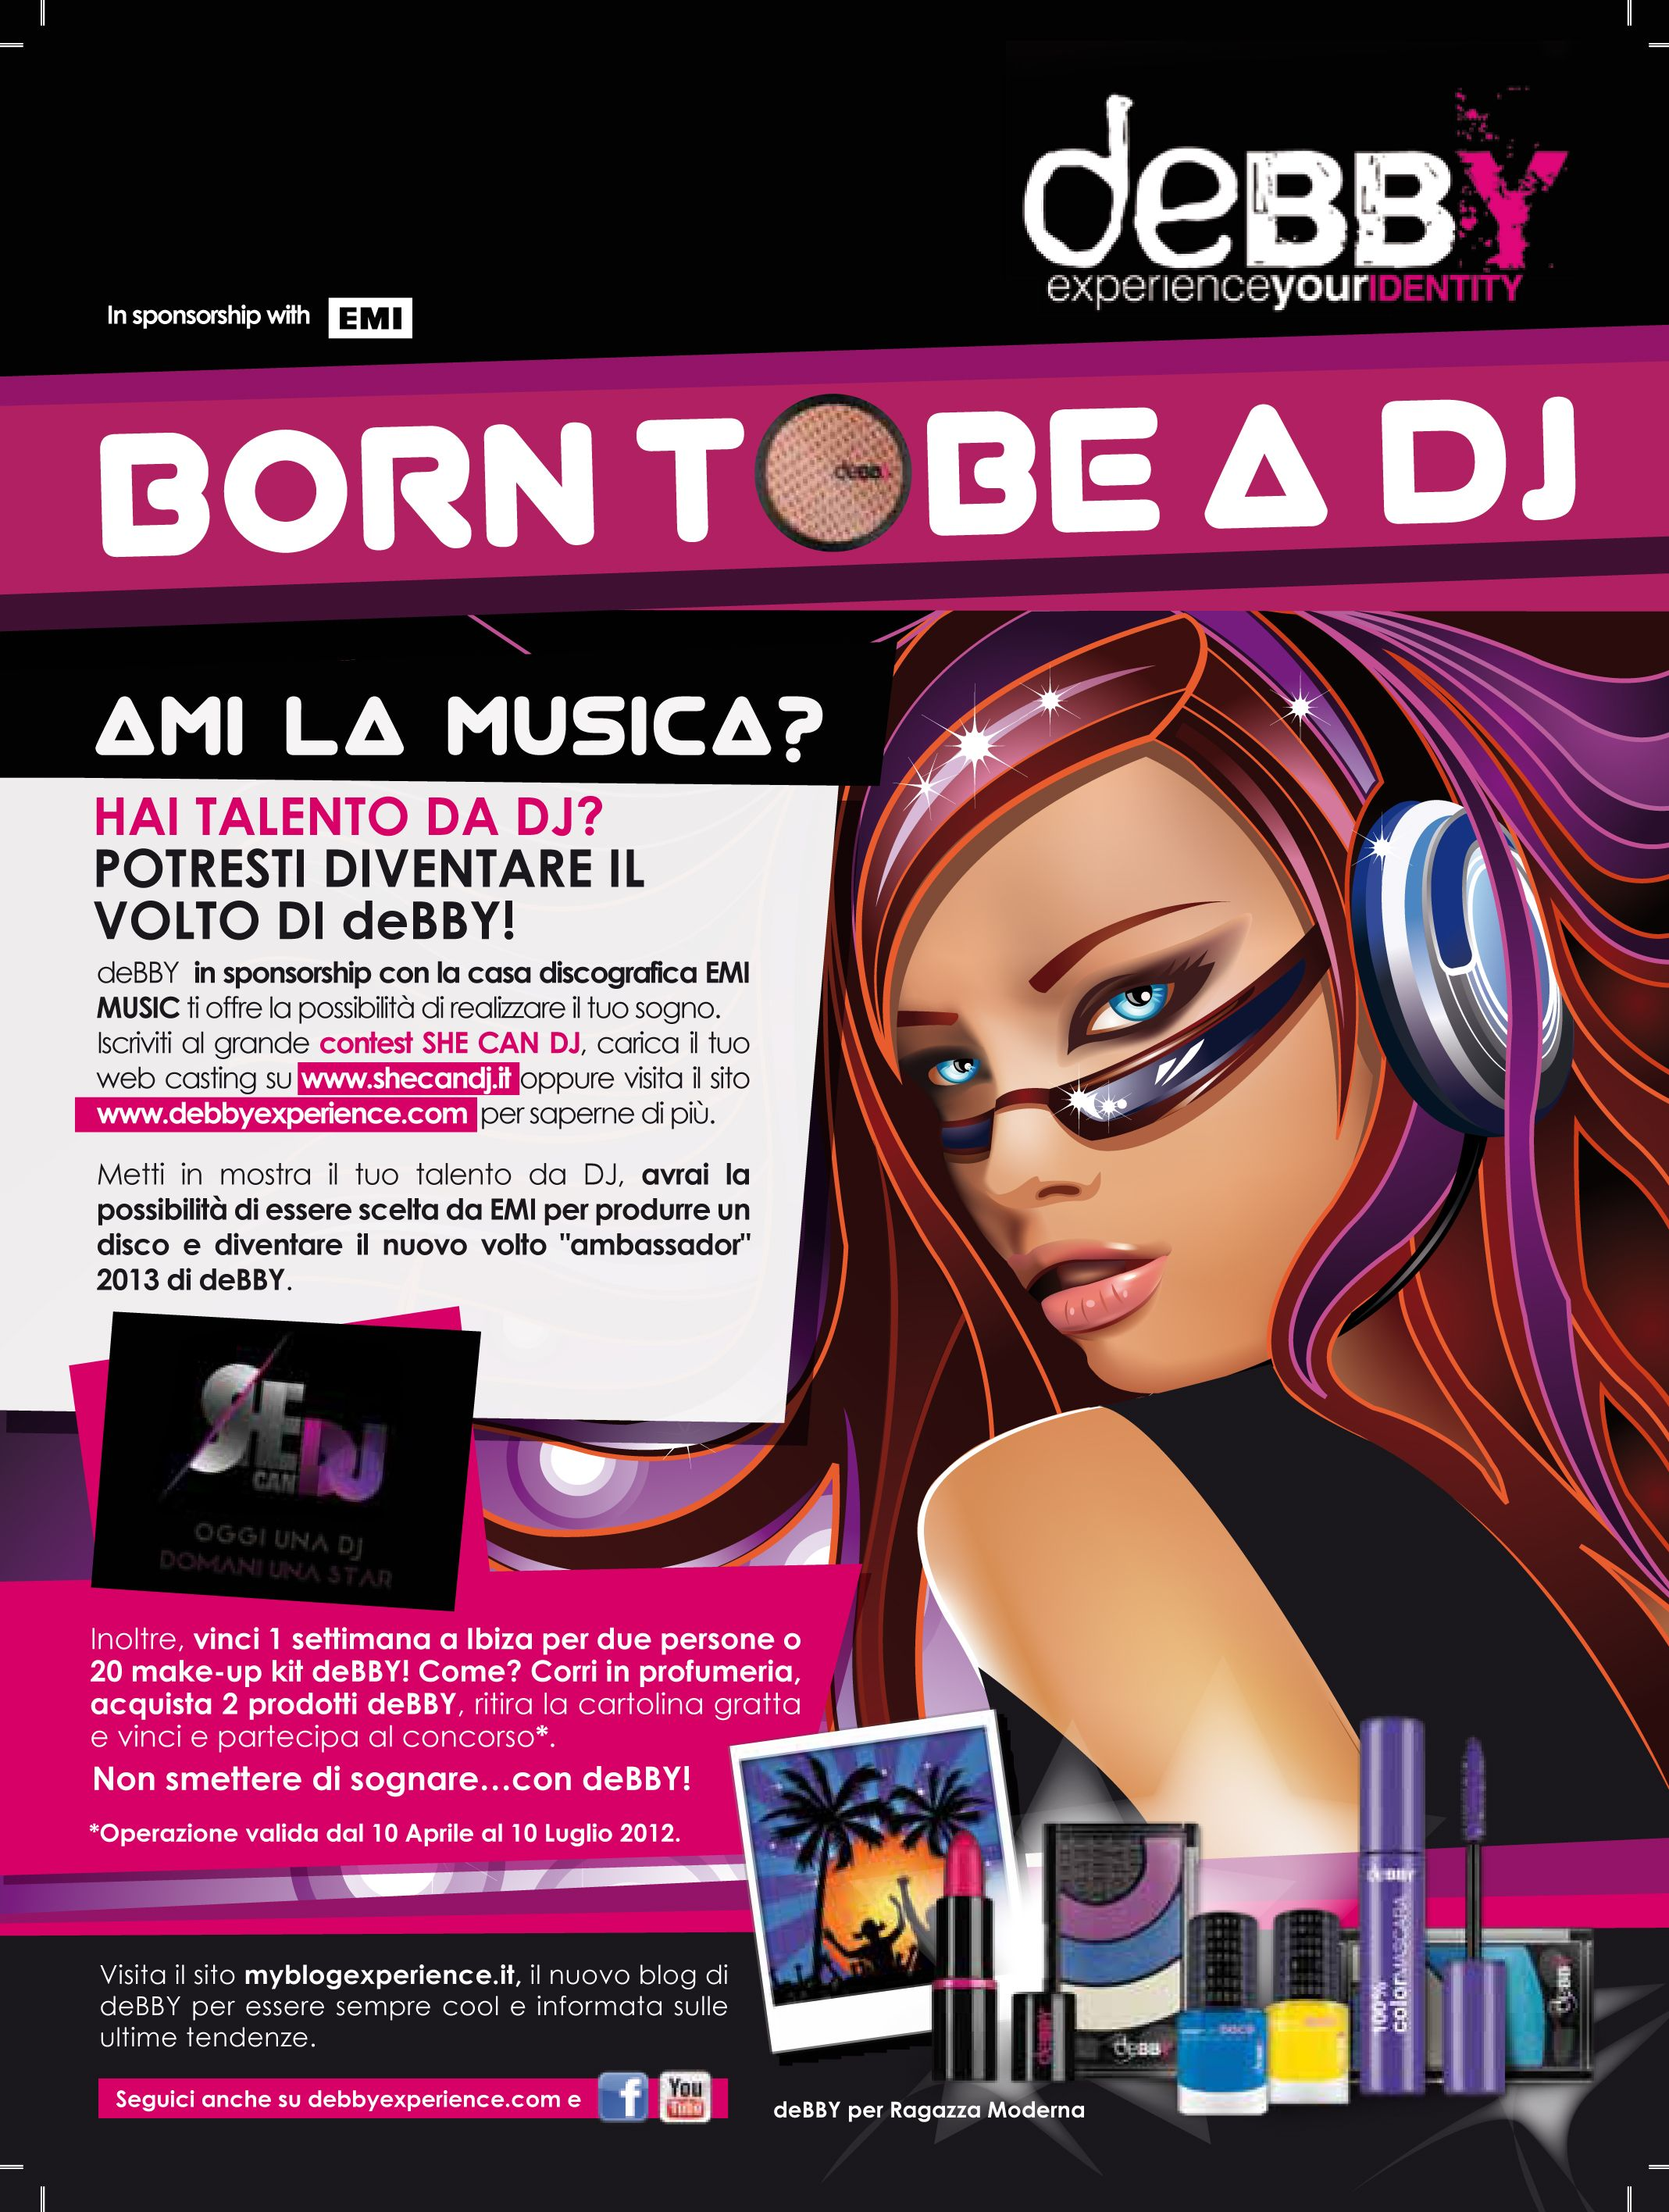 Partecipate numerose a BORN TO BE a DJ deBBY Experience with She